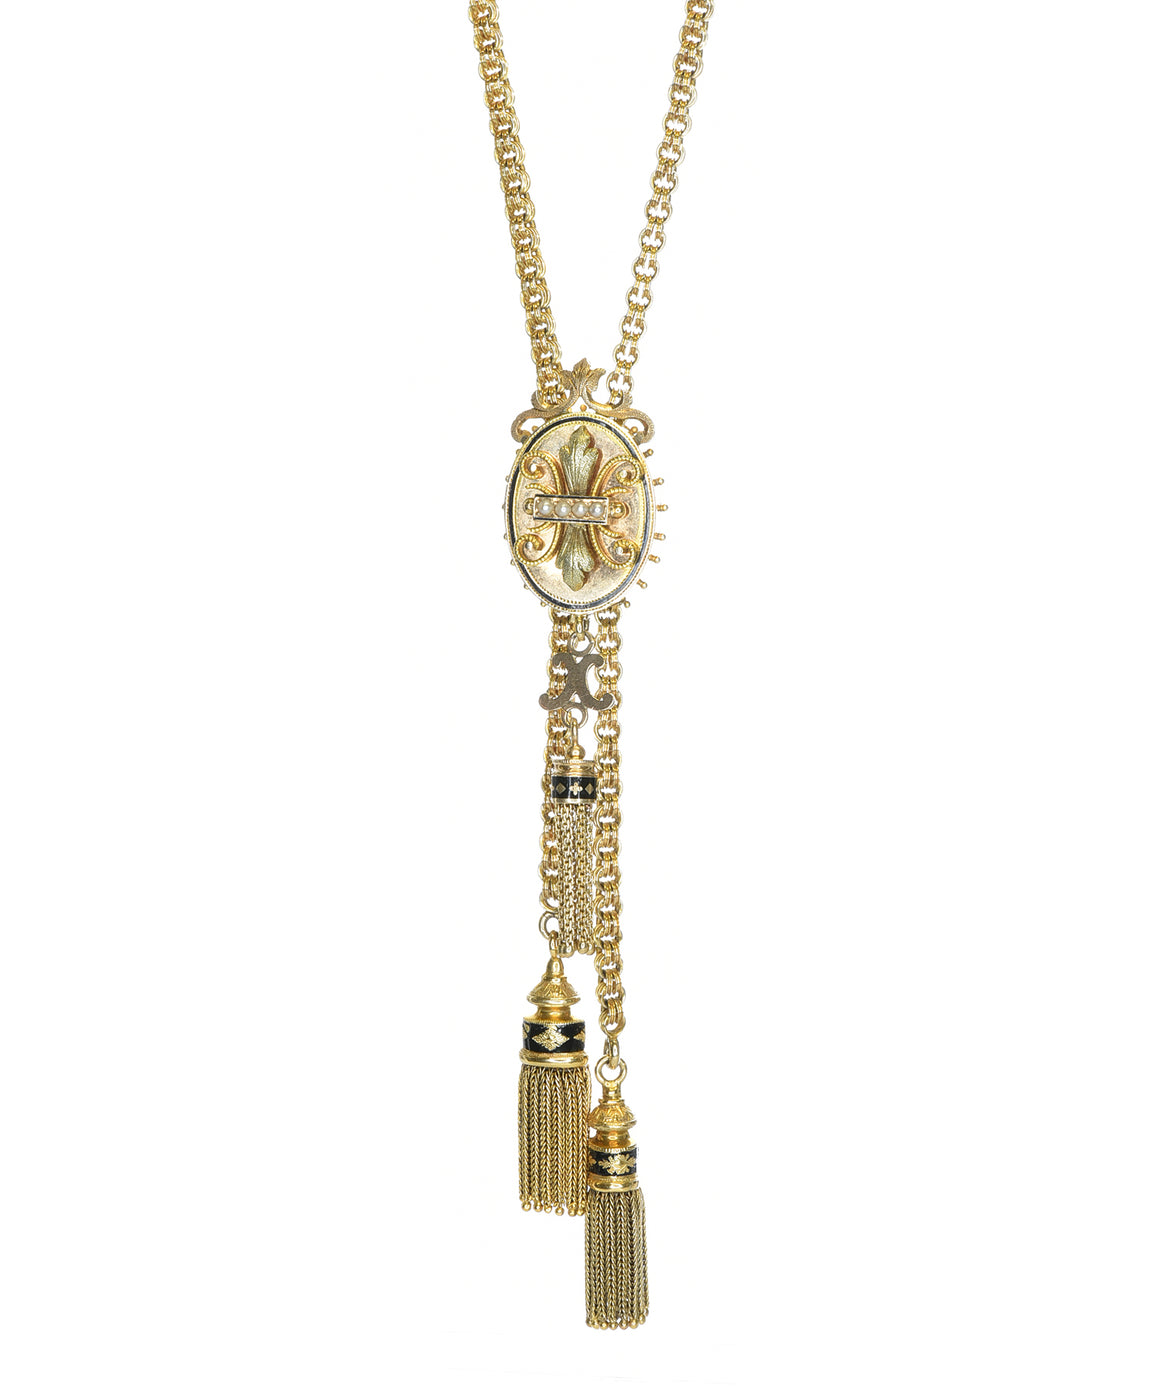 Antique slide necklace with three tassels - Lesley Ann Jewels